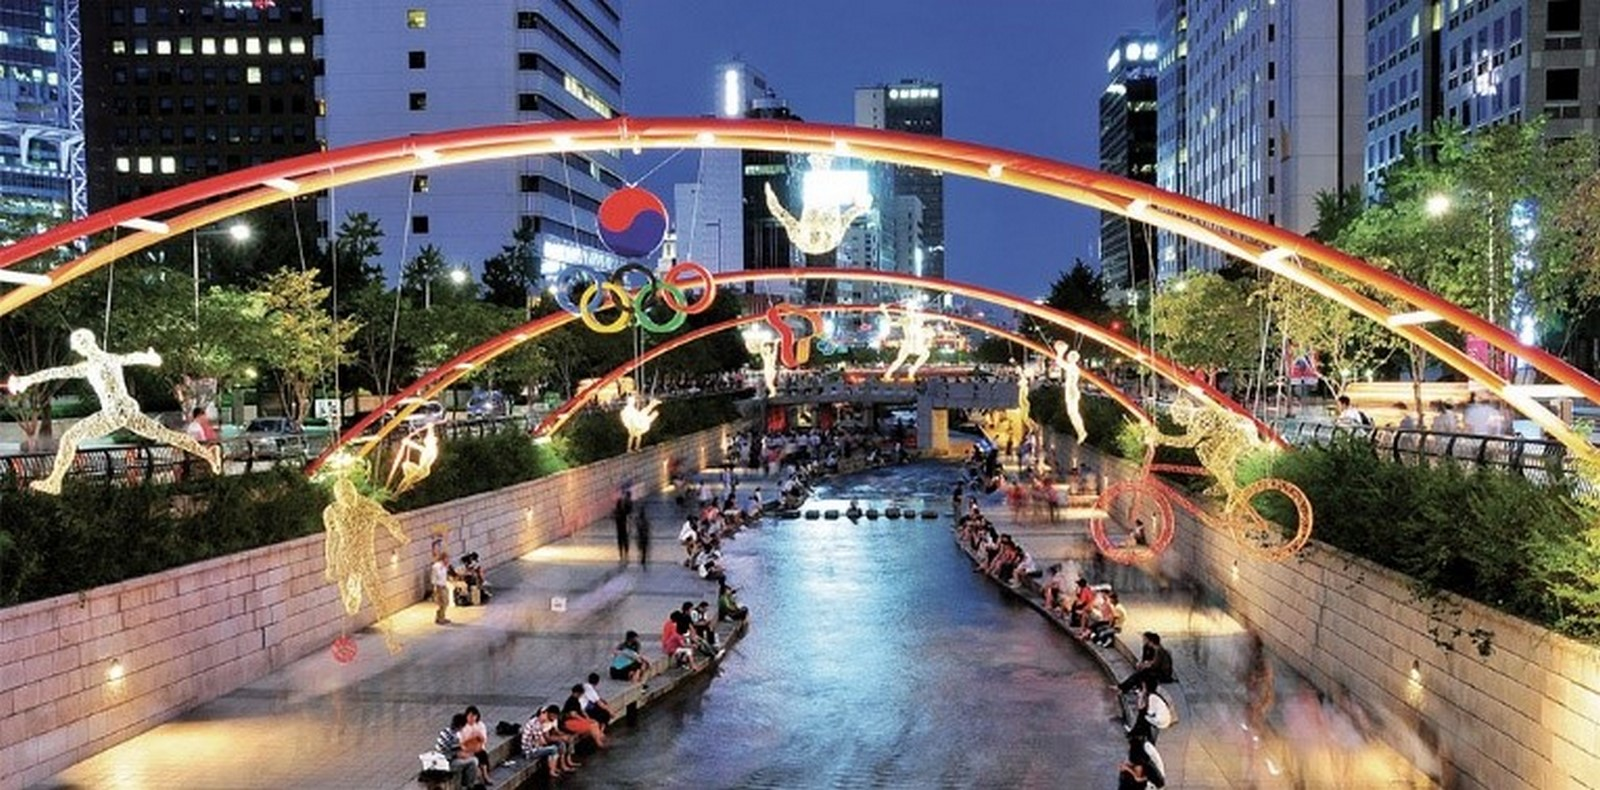 Evolution of Public Spaces in Contemporary Urban Life - Sheet4